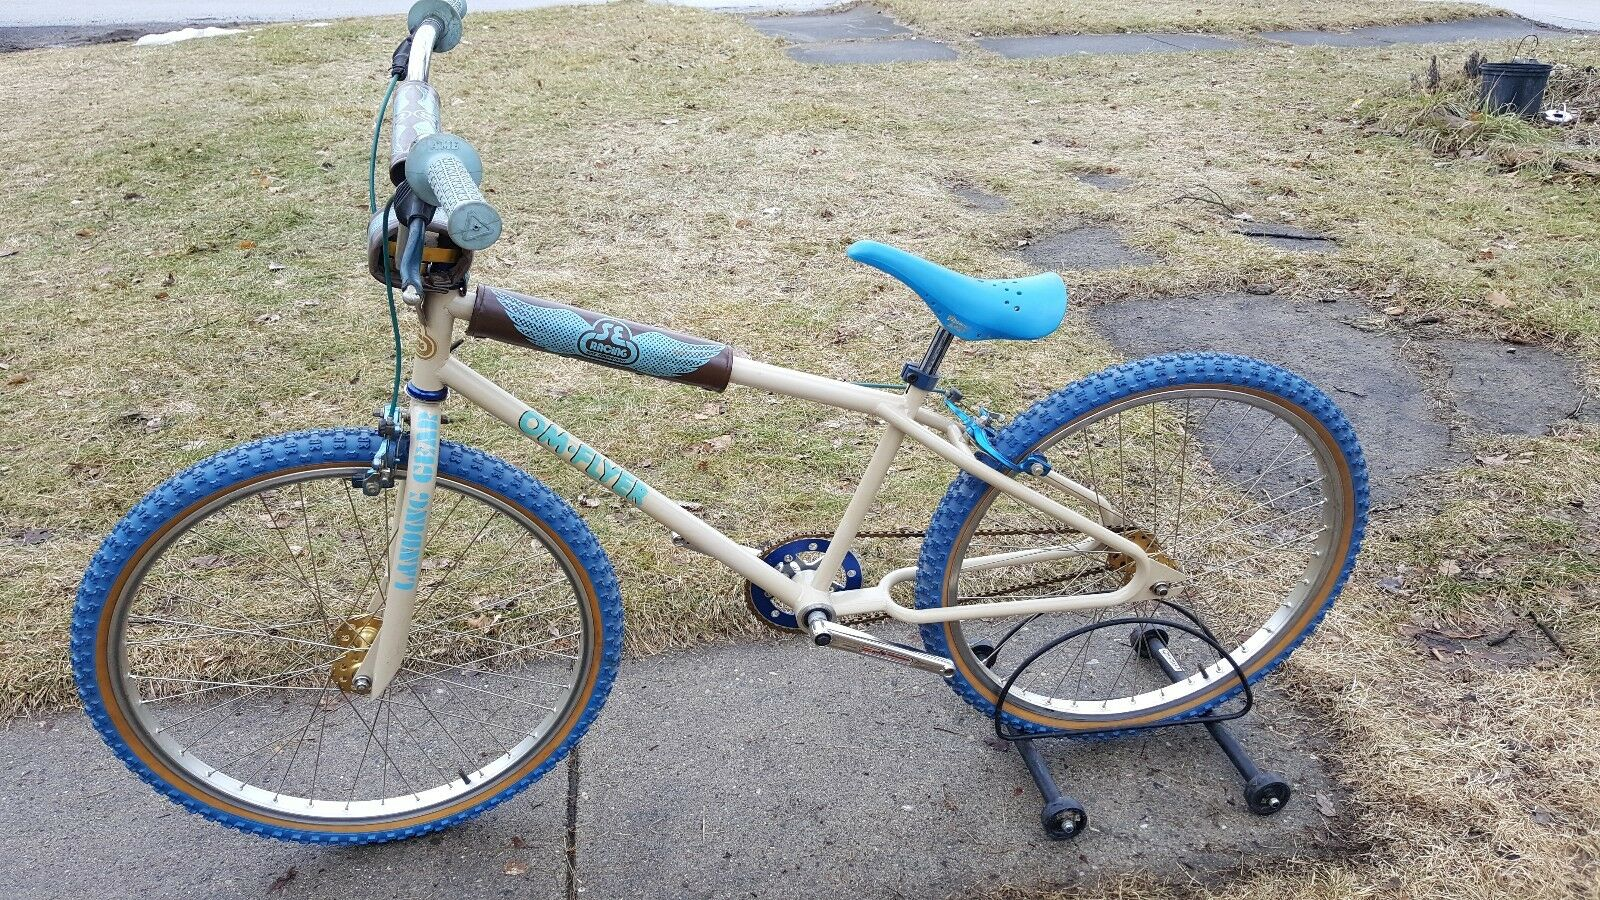 OLD SCHOOL BMX 1980 SE RACING  OM FLYER RARE COWBOY CUT FORKS 26  CRUISER VINTAGE  factory direct and quick delivery